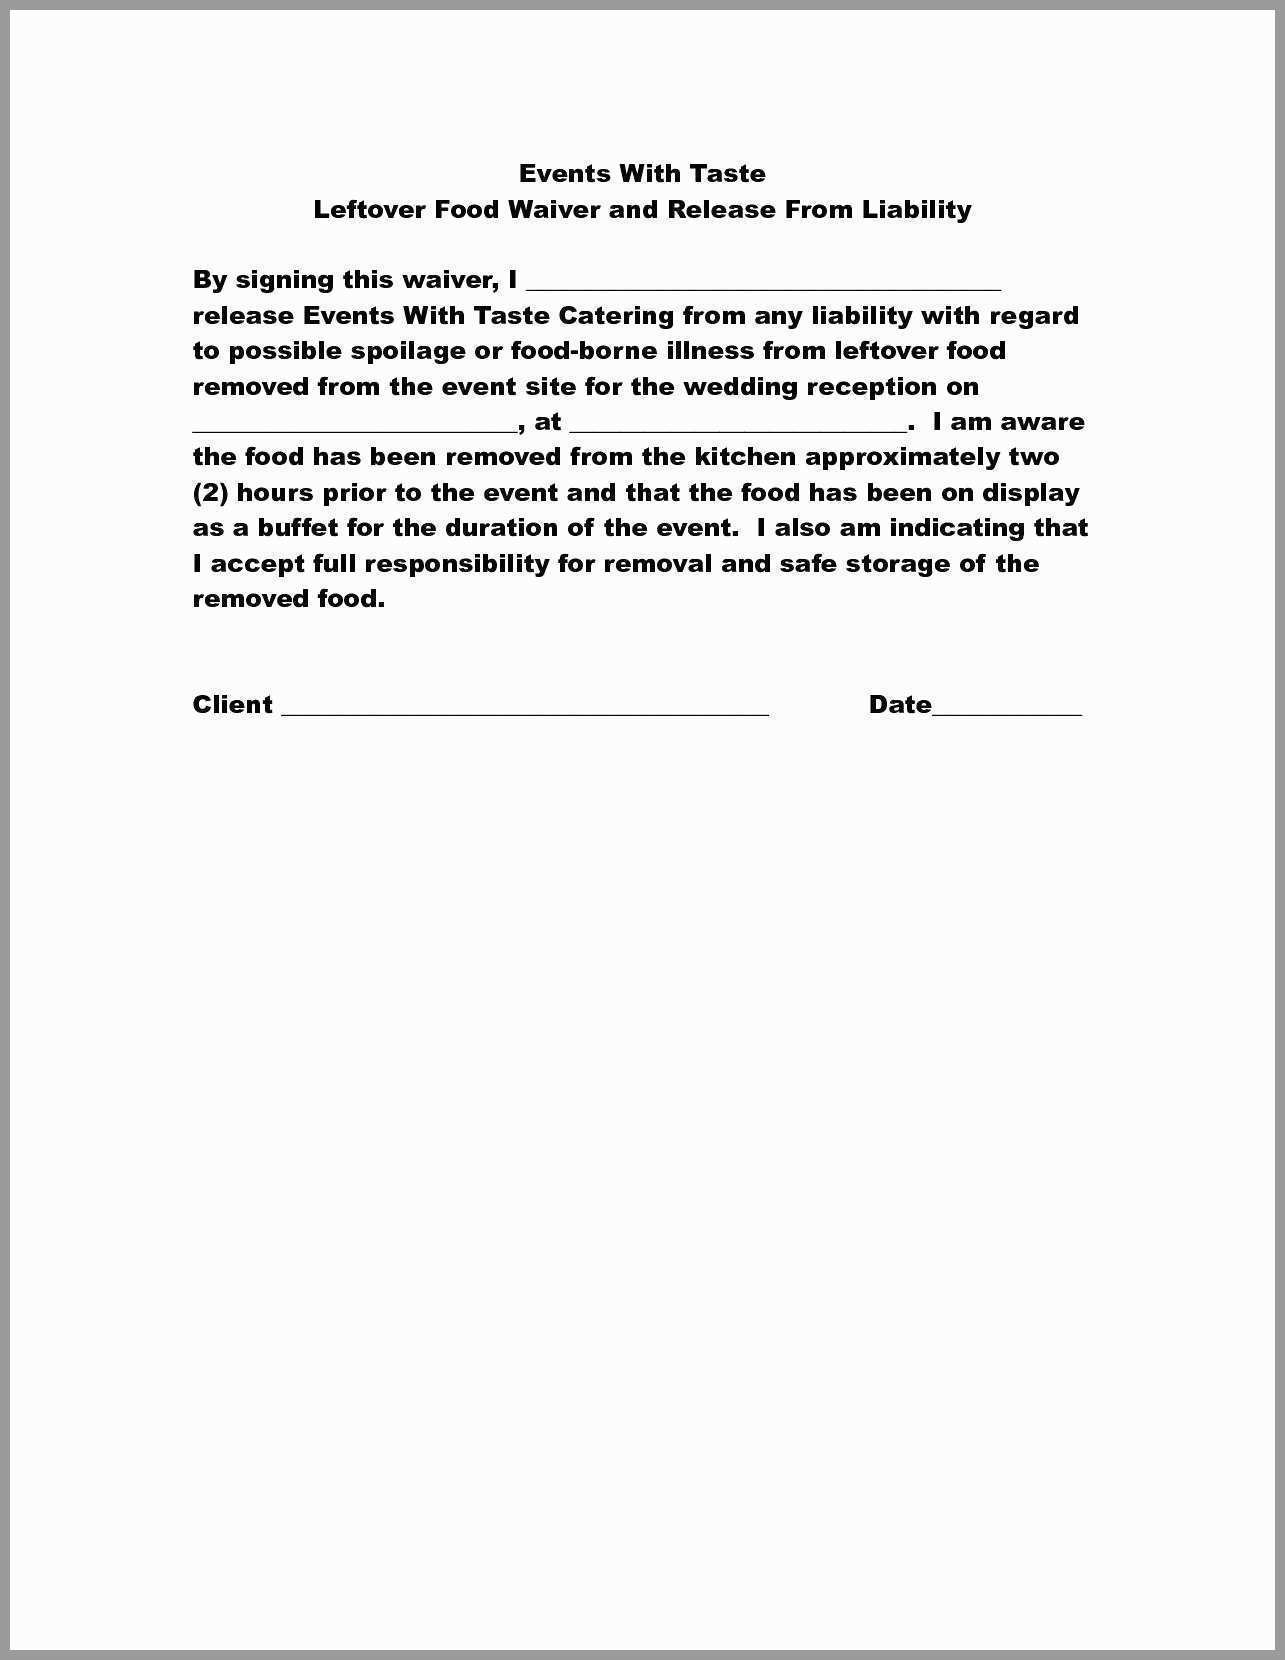 Group Fitness Waiver Template Best Release Liability Form Template Awesome 30 Unique Release From